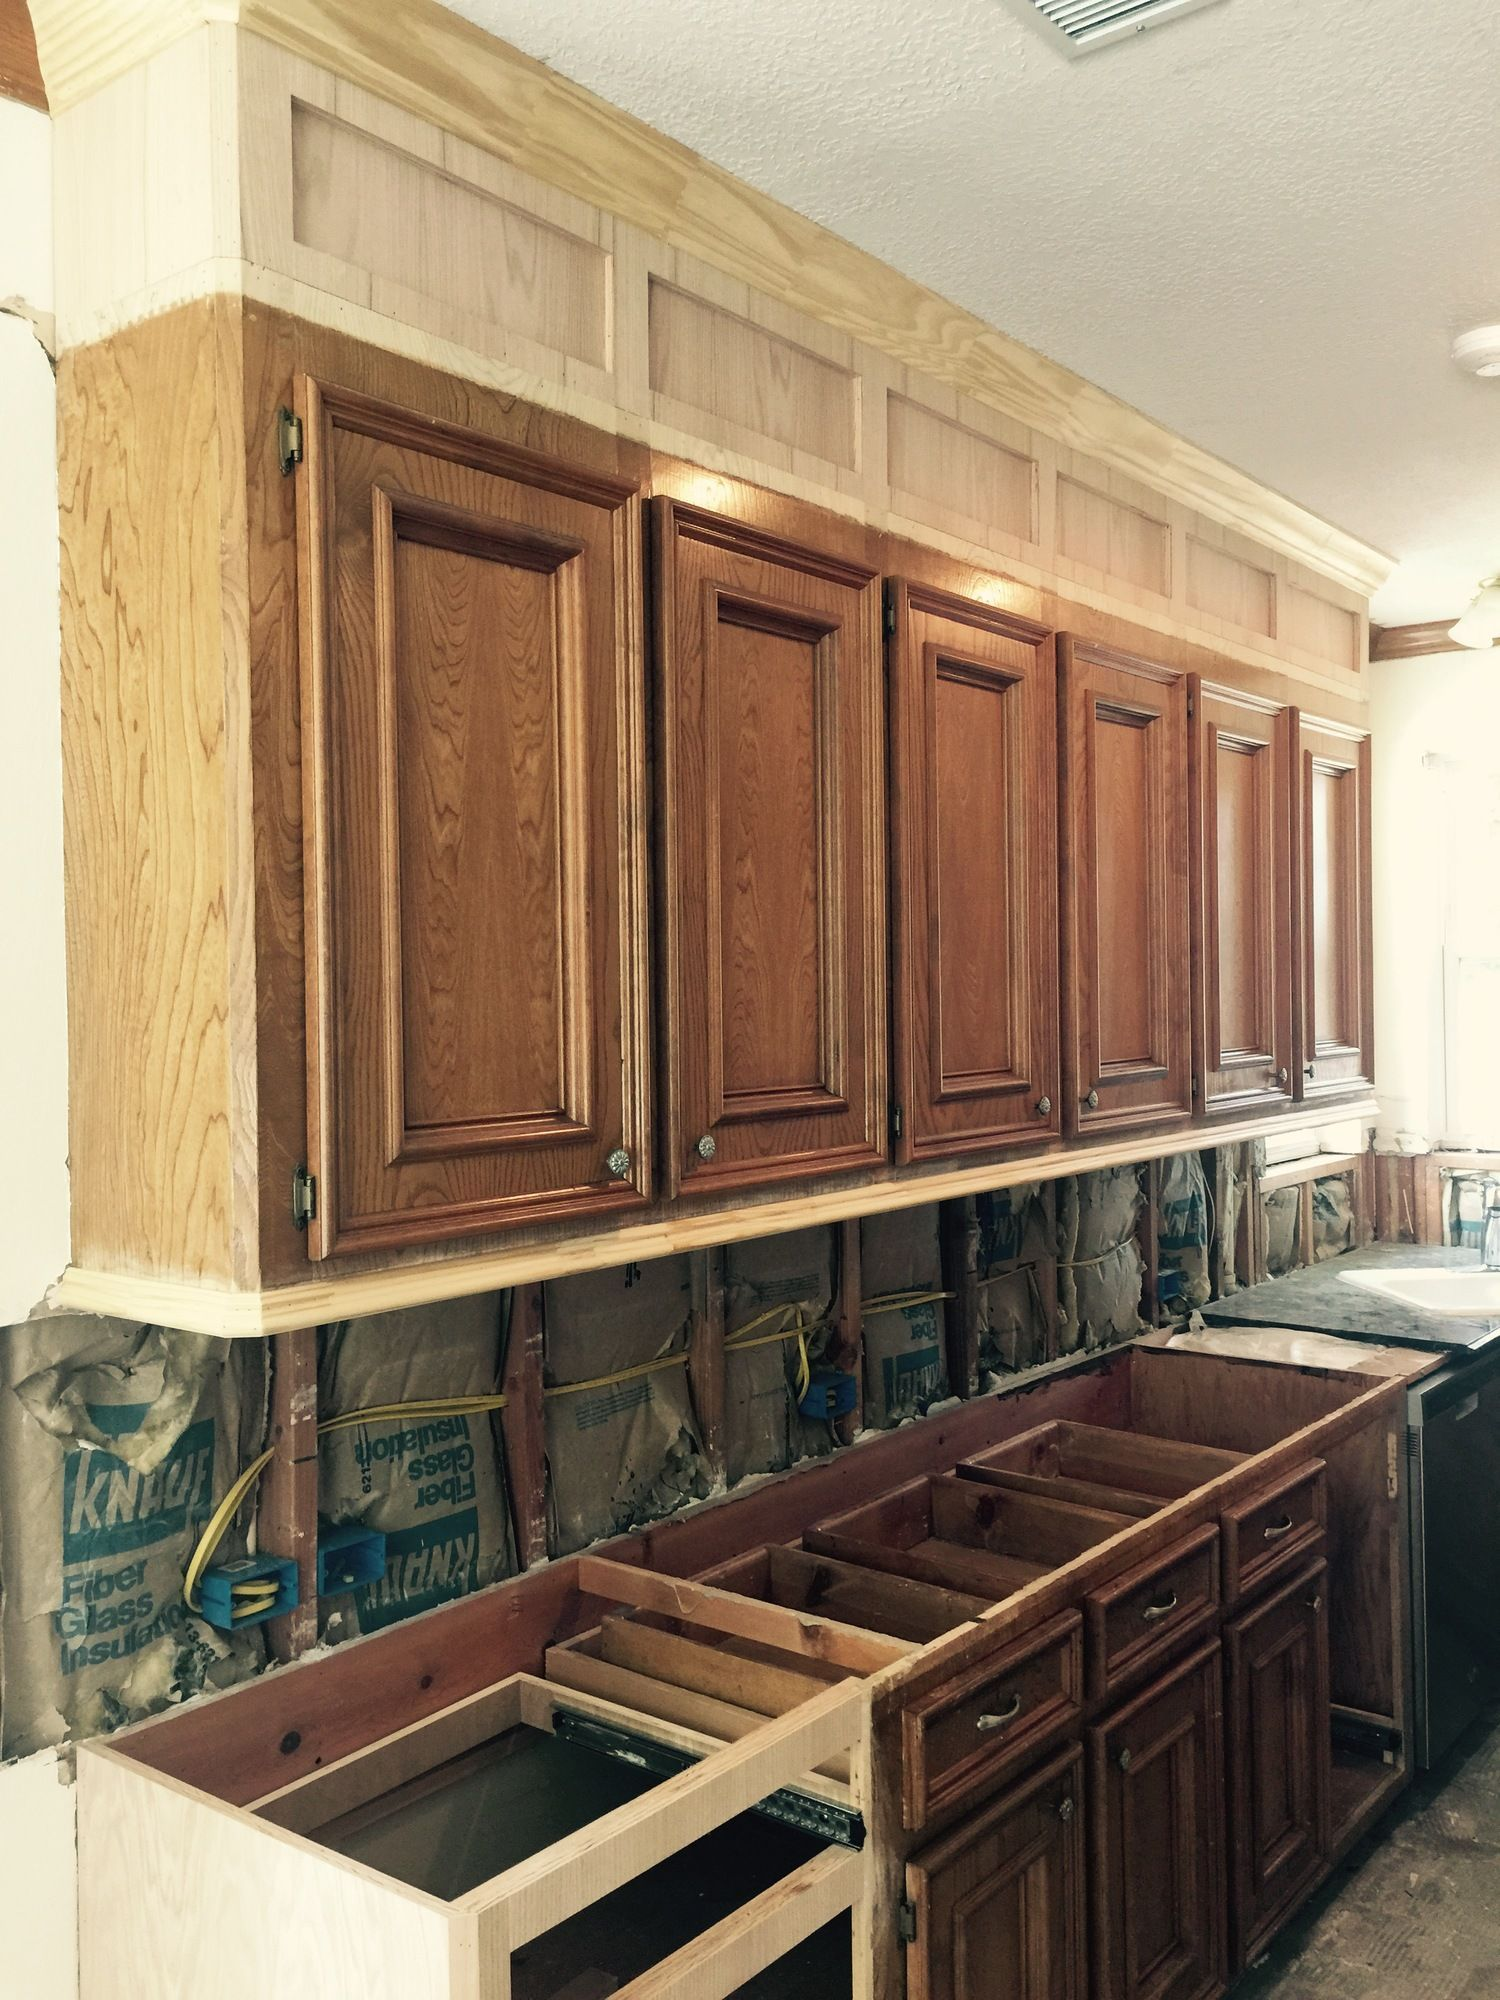 Kitchen Cabinets Under Construction Extending Cabinets To The Ceiling Kitchenremodel Kitchen Soffit Kitchen Cabinets To Ceiling Old Kitchen Cabinets